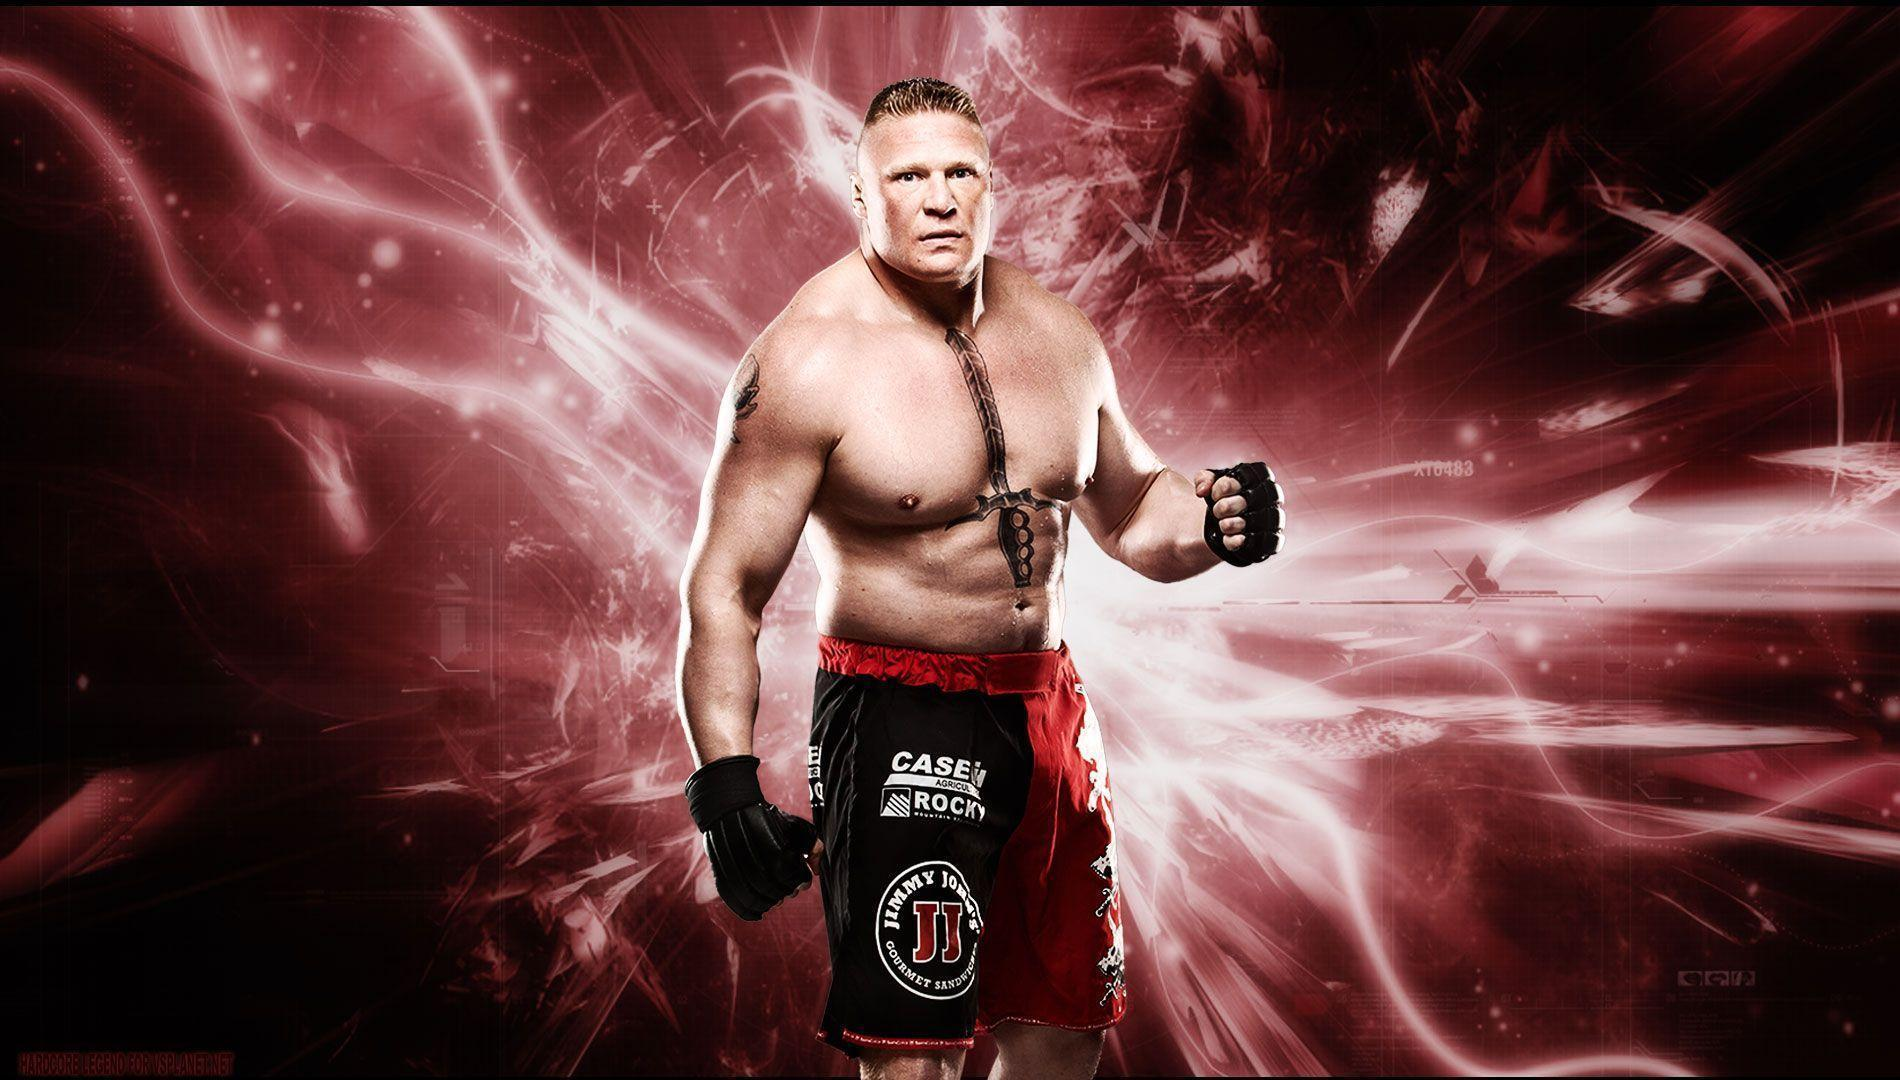 Wwe wallpapers brock lesnar